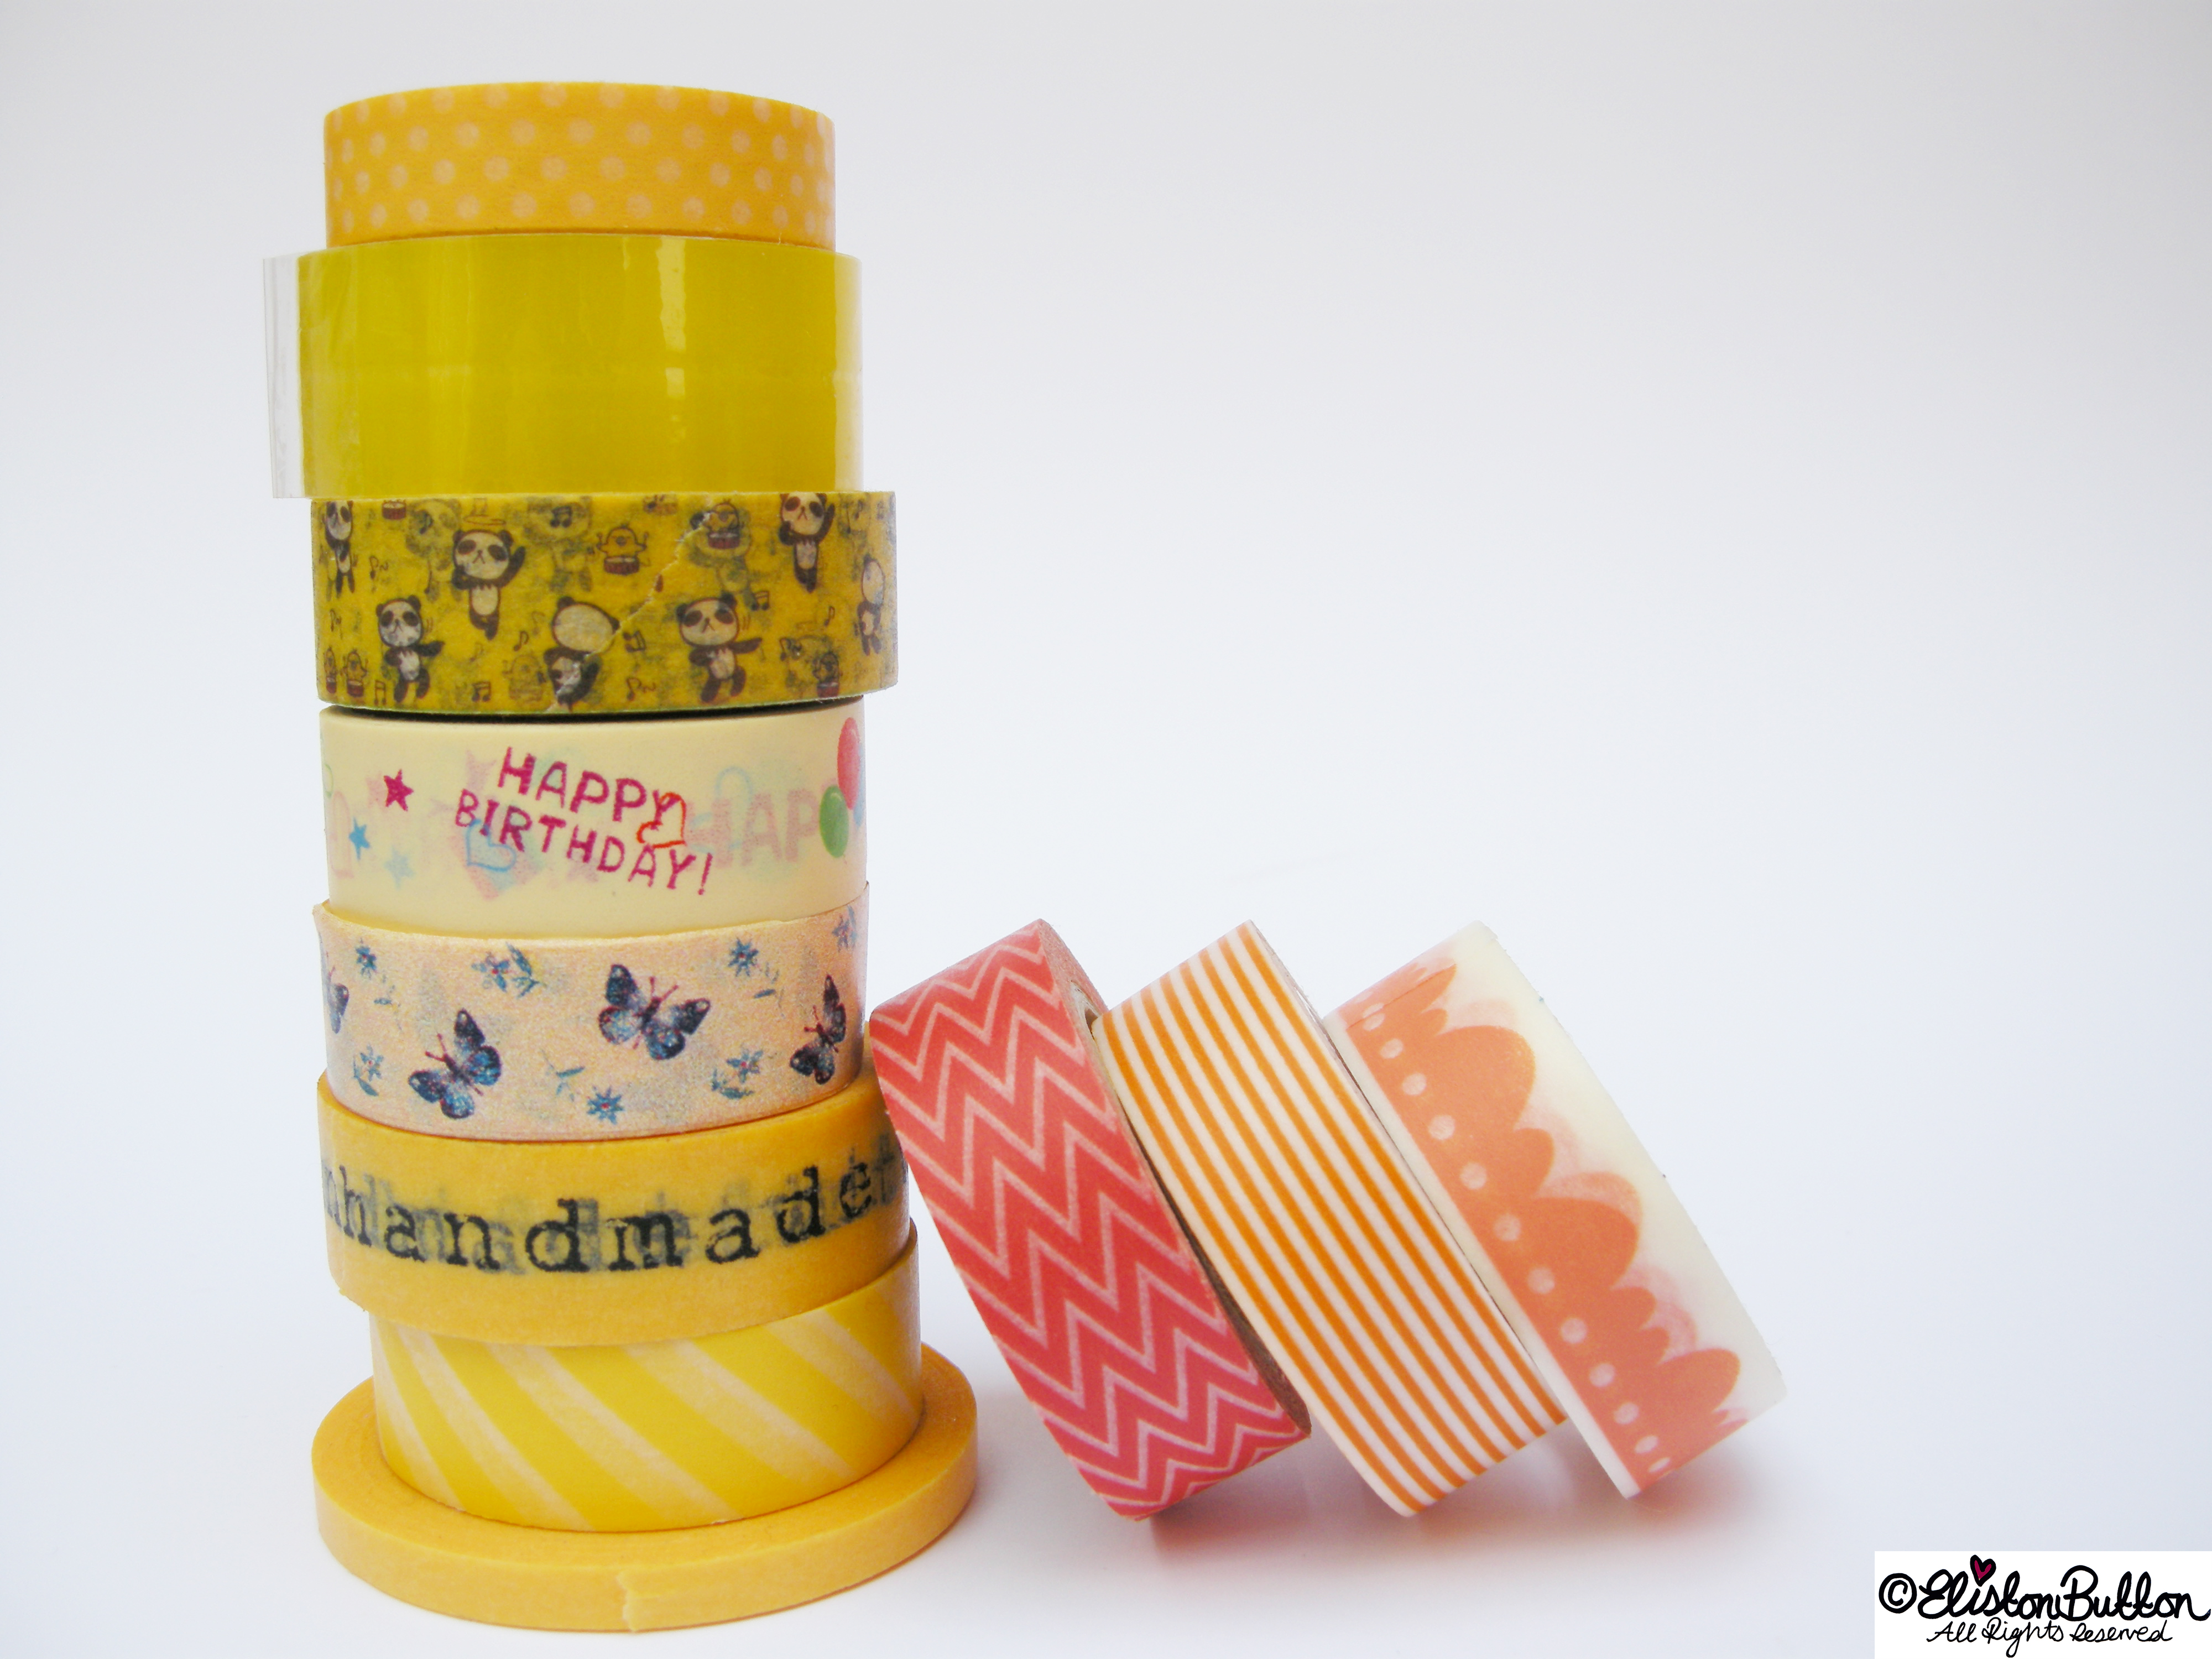 Citrus Oranges and Lemons Piles of Washi Tape Rolls - My Washi Tape Collection at www.elistonbutton.com - Eliston Button - That Crafty Kid – Art, Design, Craft & Adventure.